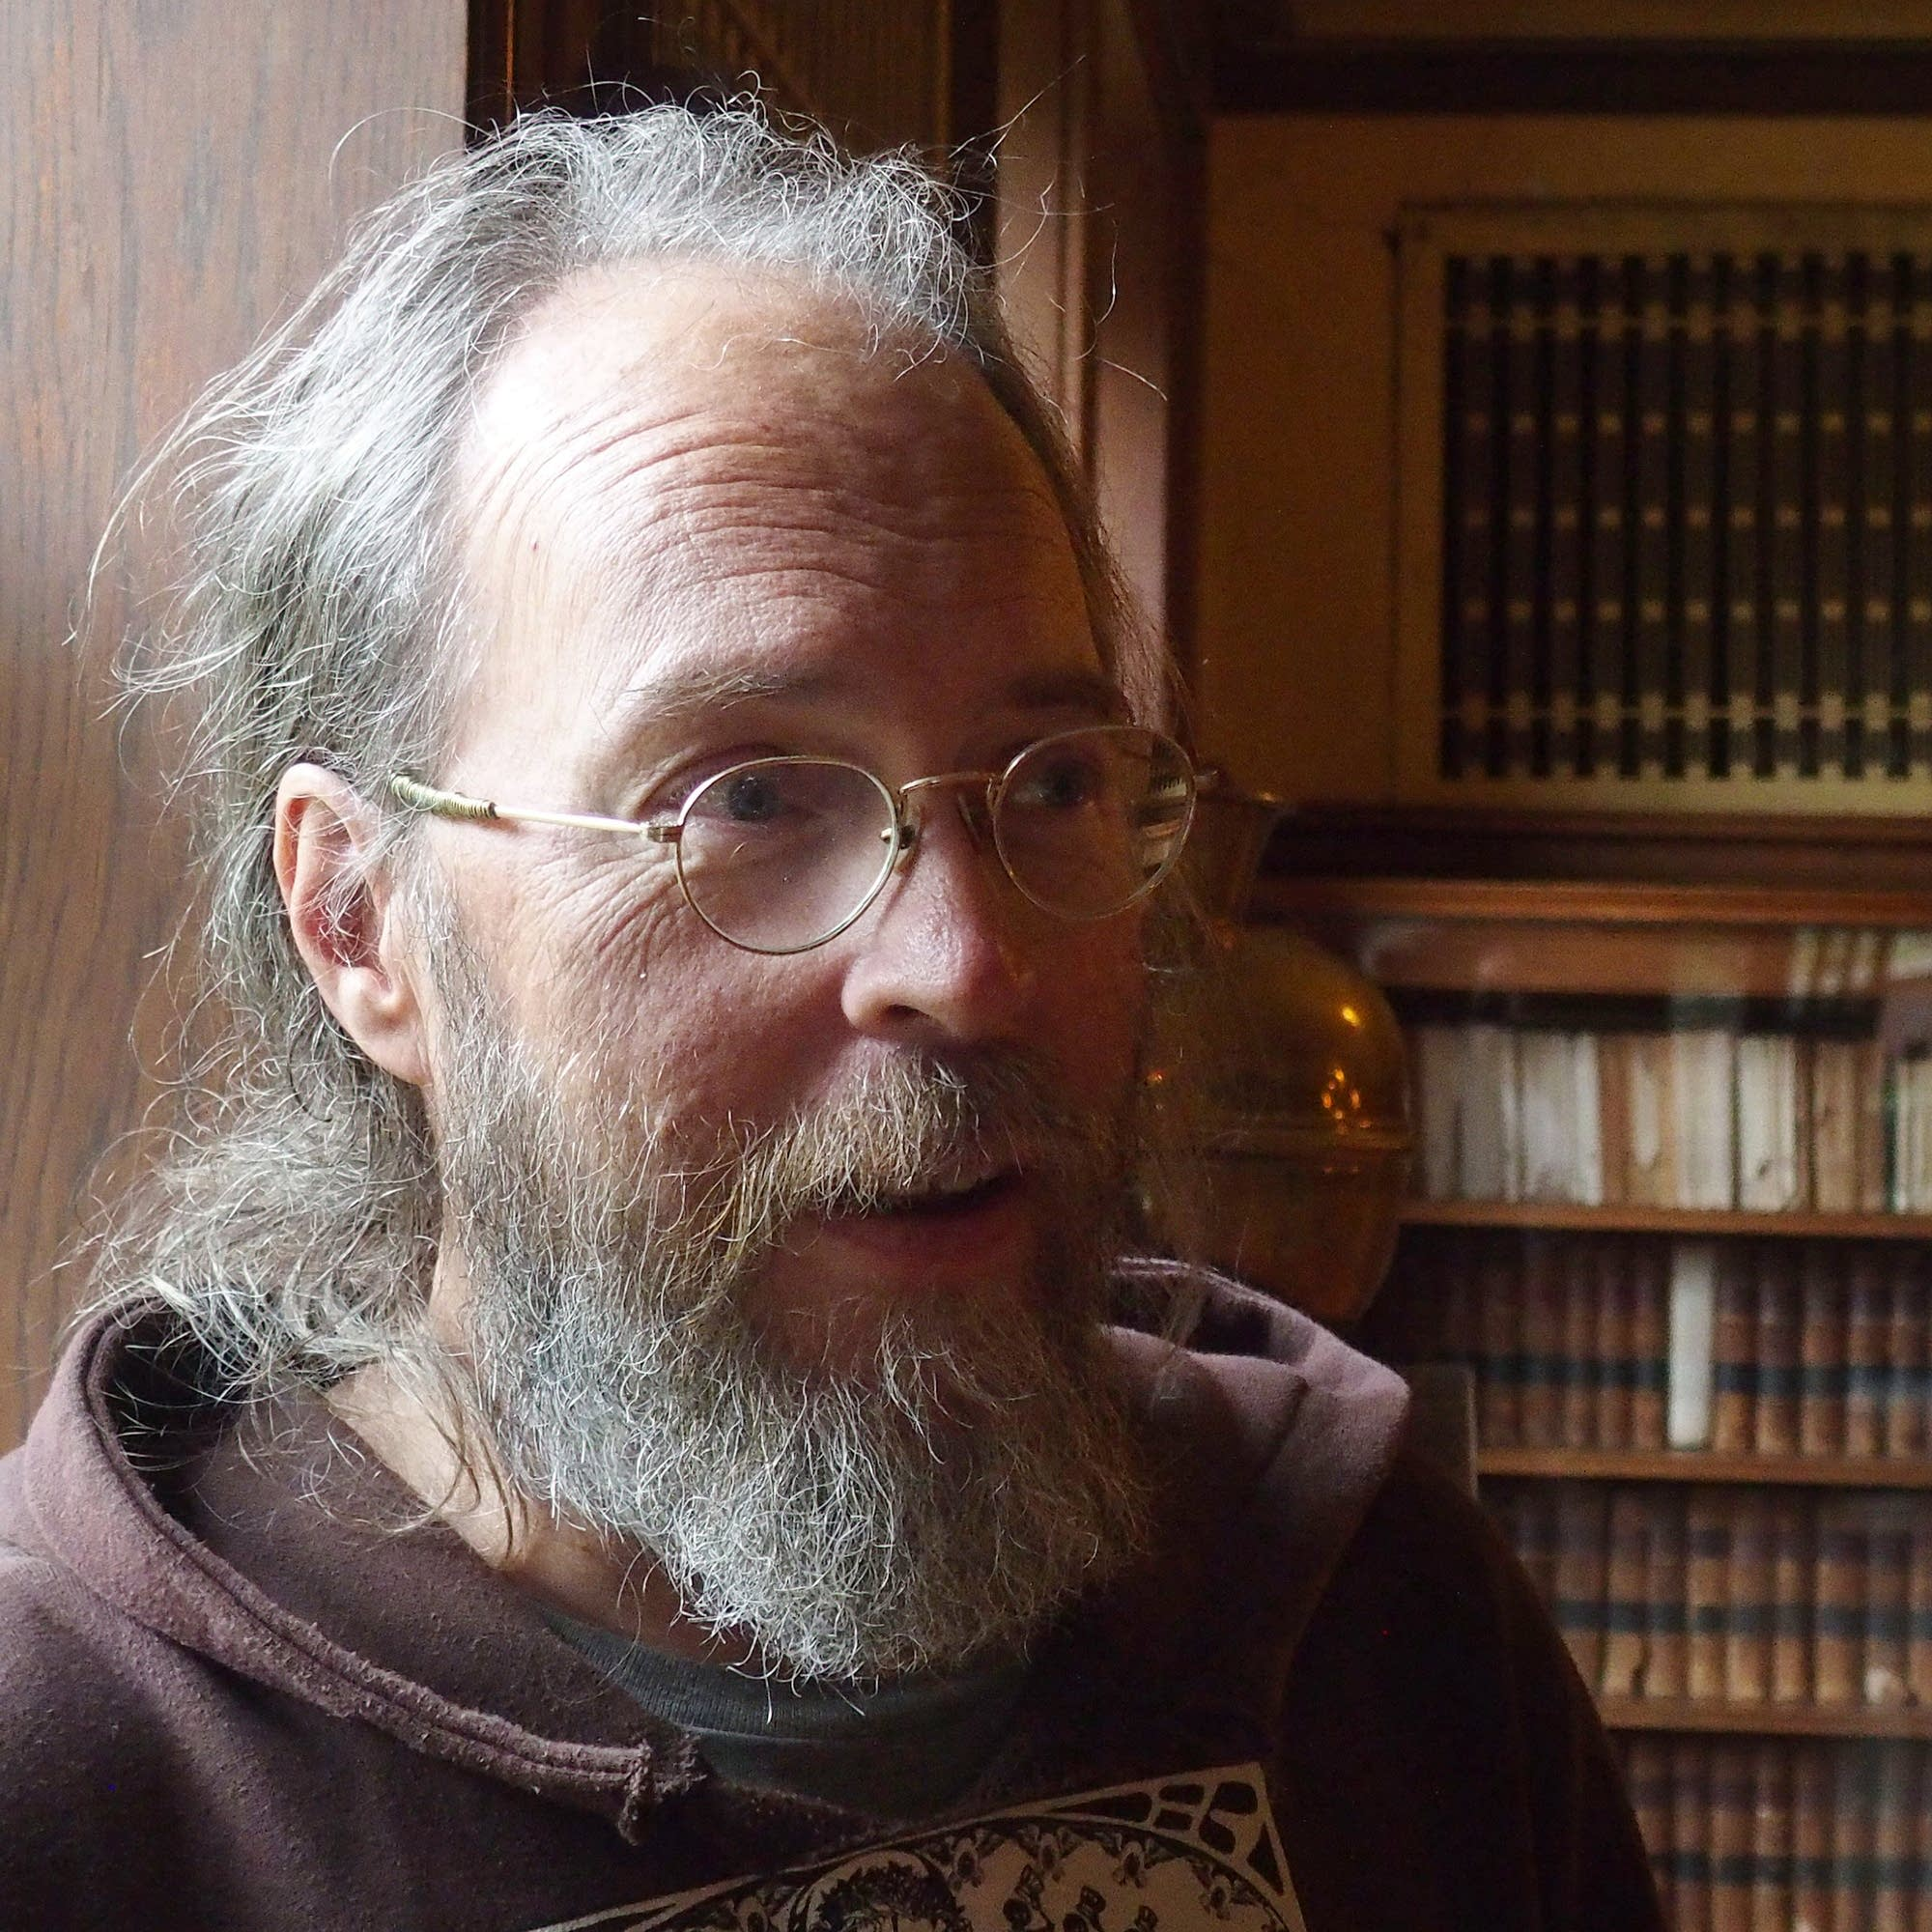 Charlie Parr stands in front of a bookshelf.